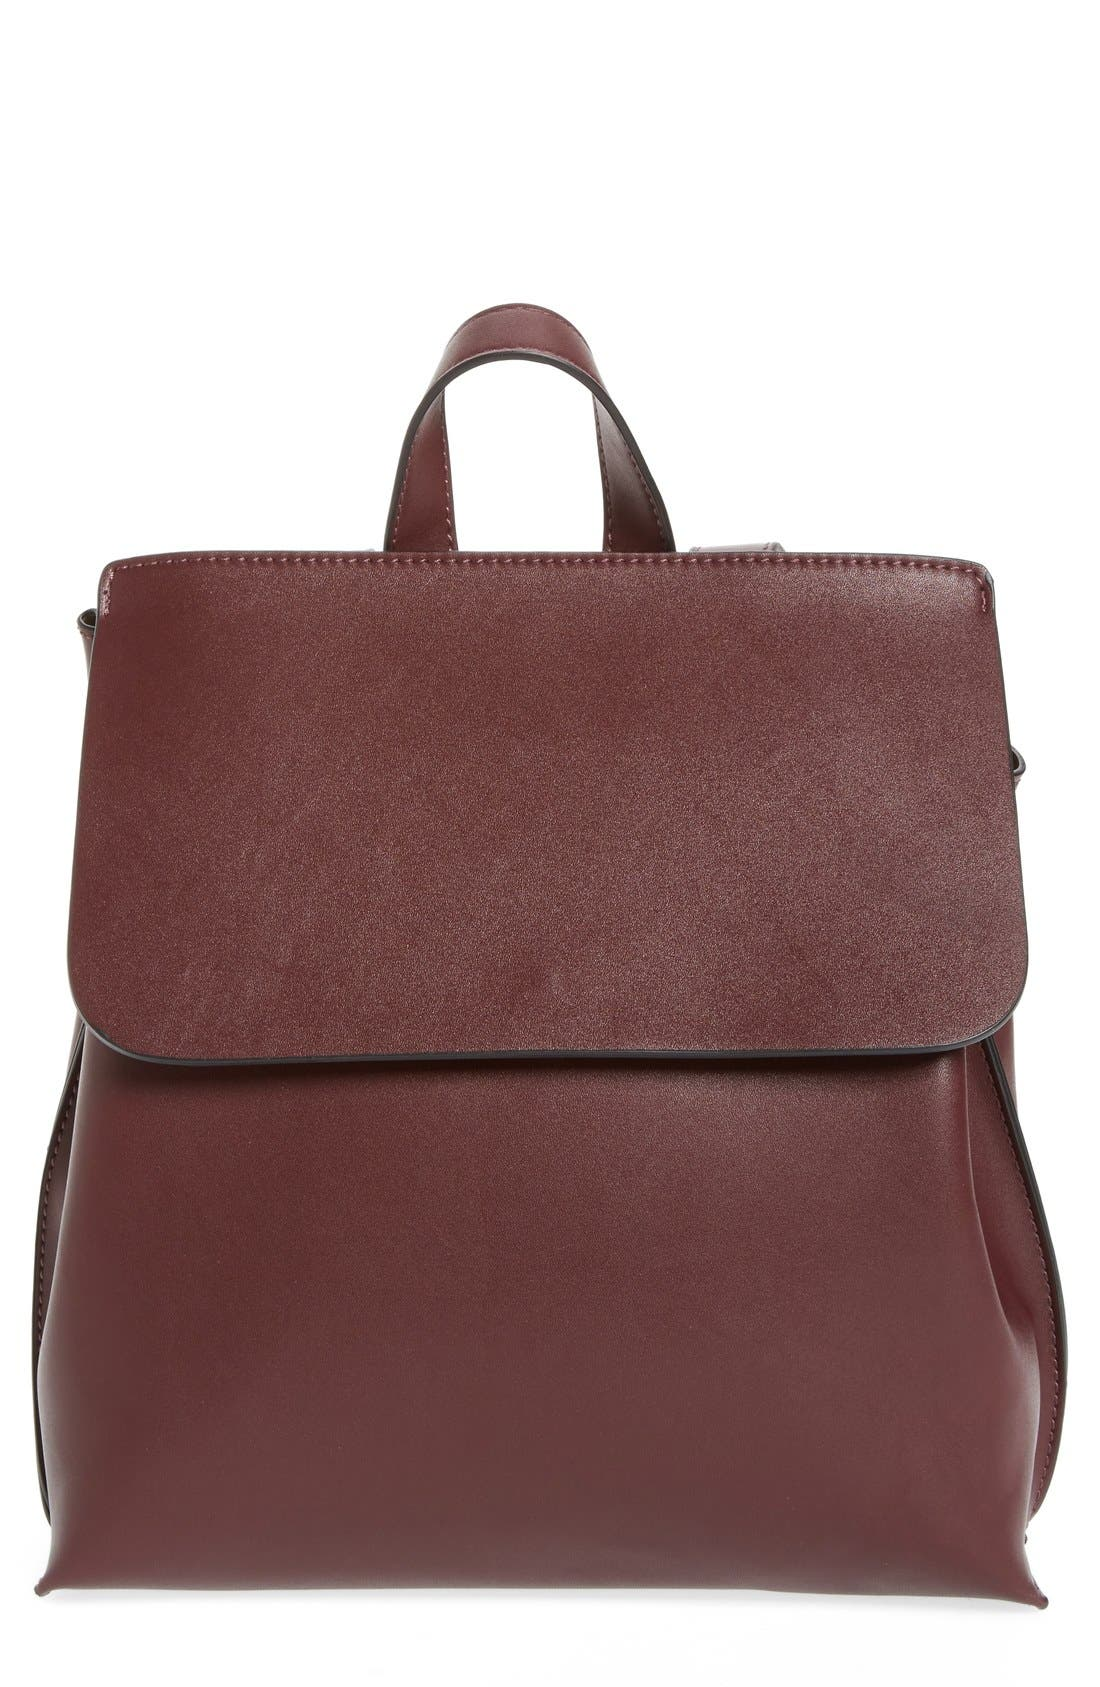 Main Image - Sole Society Selena Faux Leather Backpack